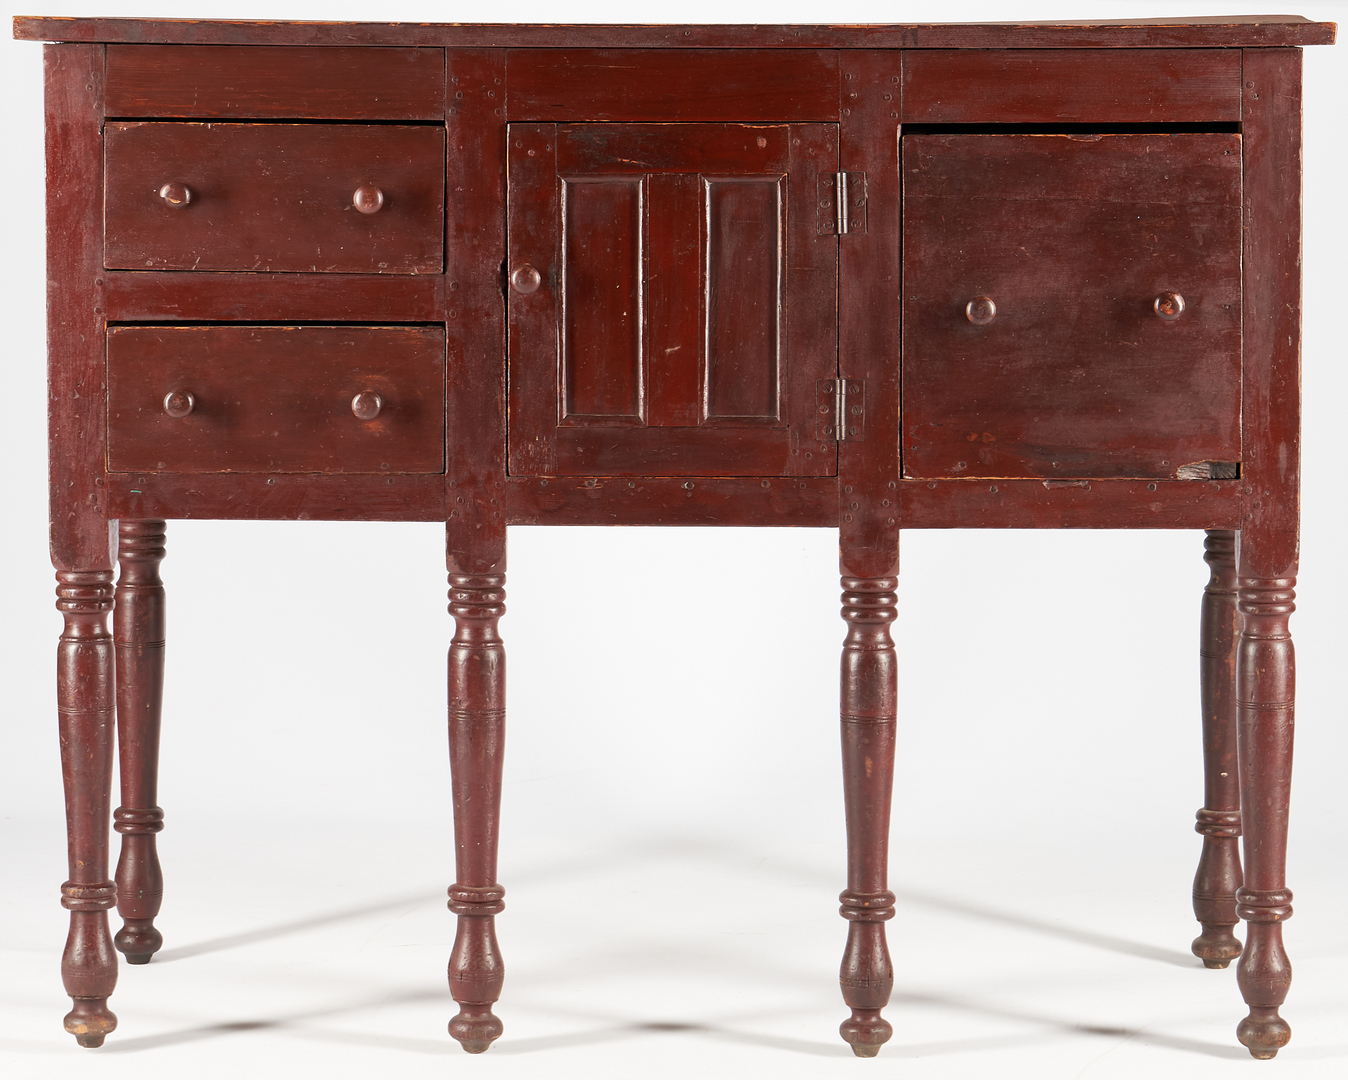 Lot 465: Southern Sheraton Red Painted Sideboard or Huntboard